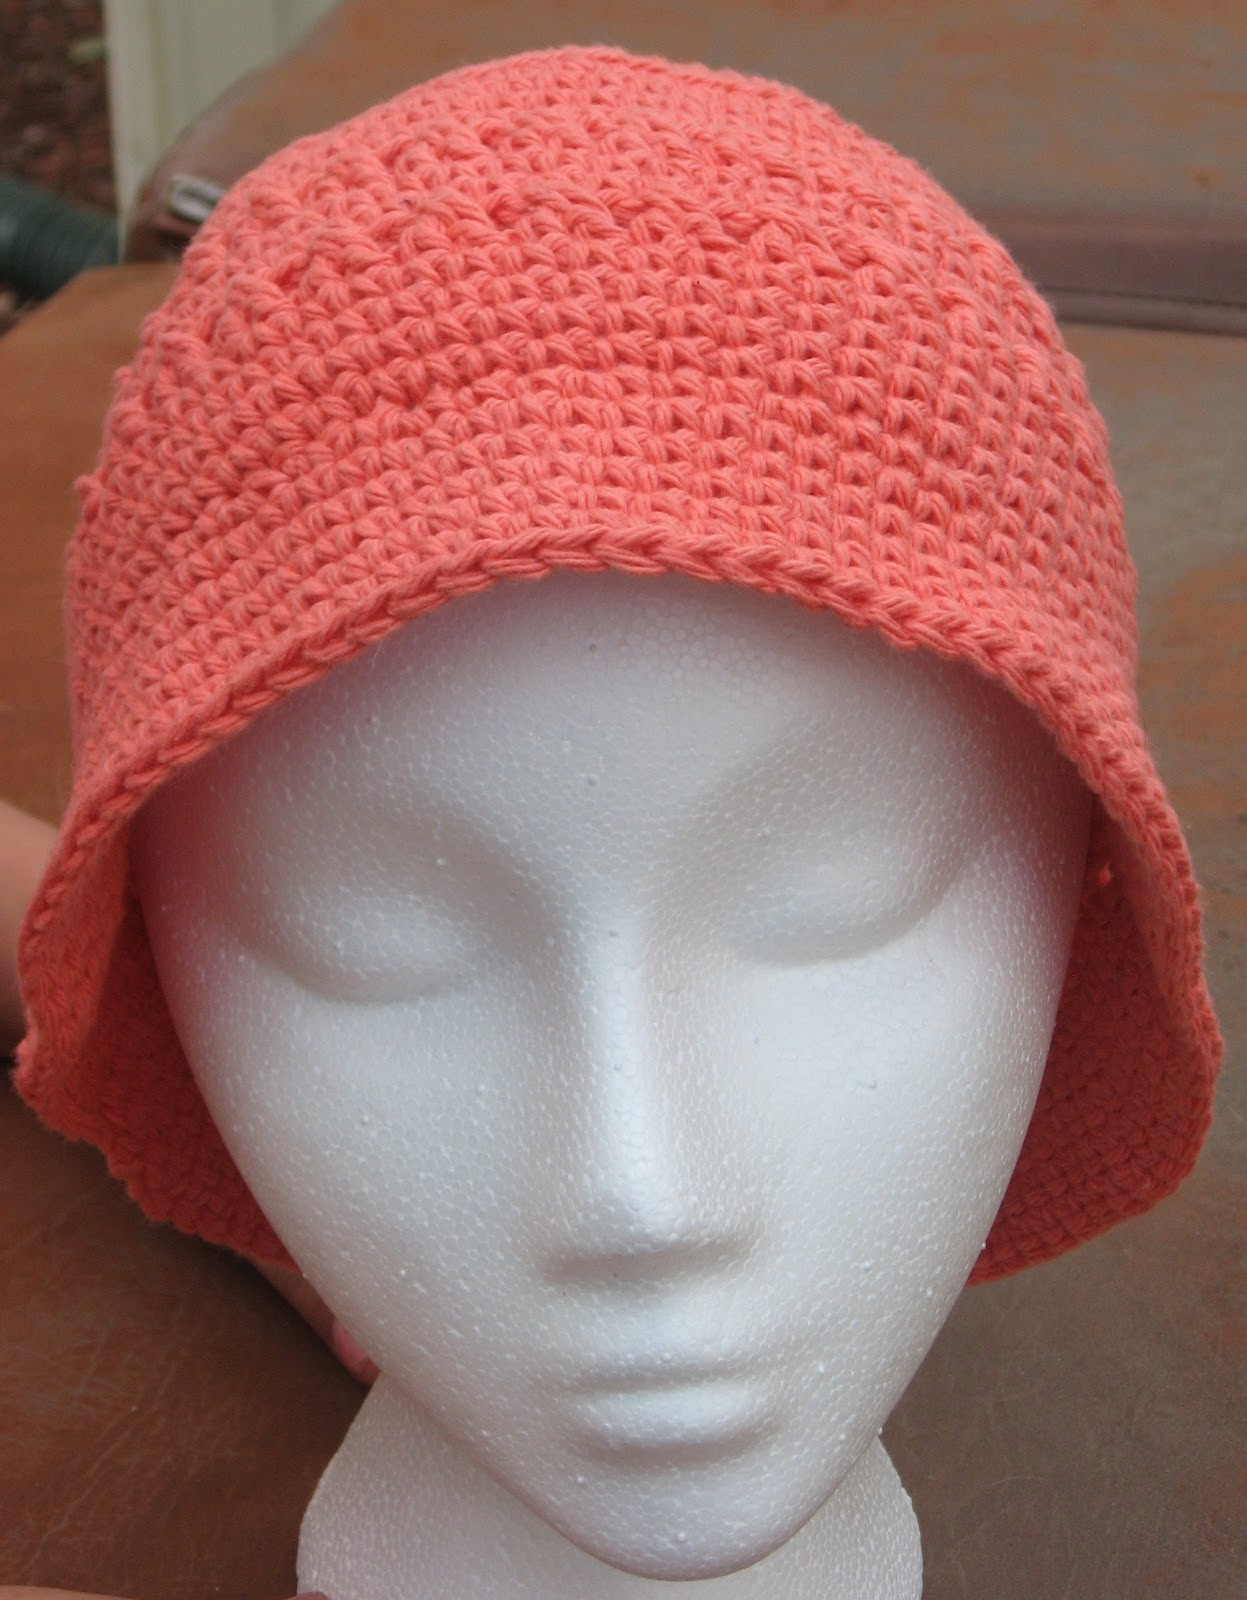 Free Chemo Hat Patterns Inspirational Knots Love Crochet Chemo Cap Patterns Of Contemporary 43 Images Free Chemo Hat Patterns